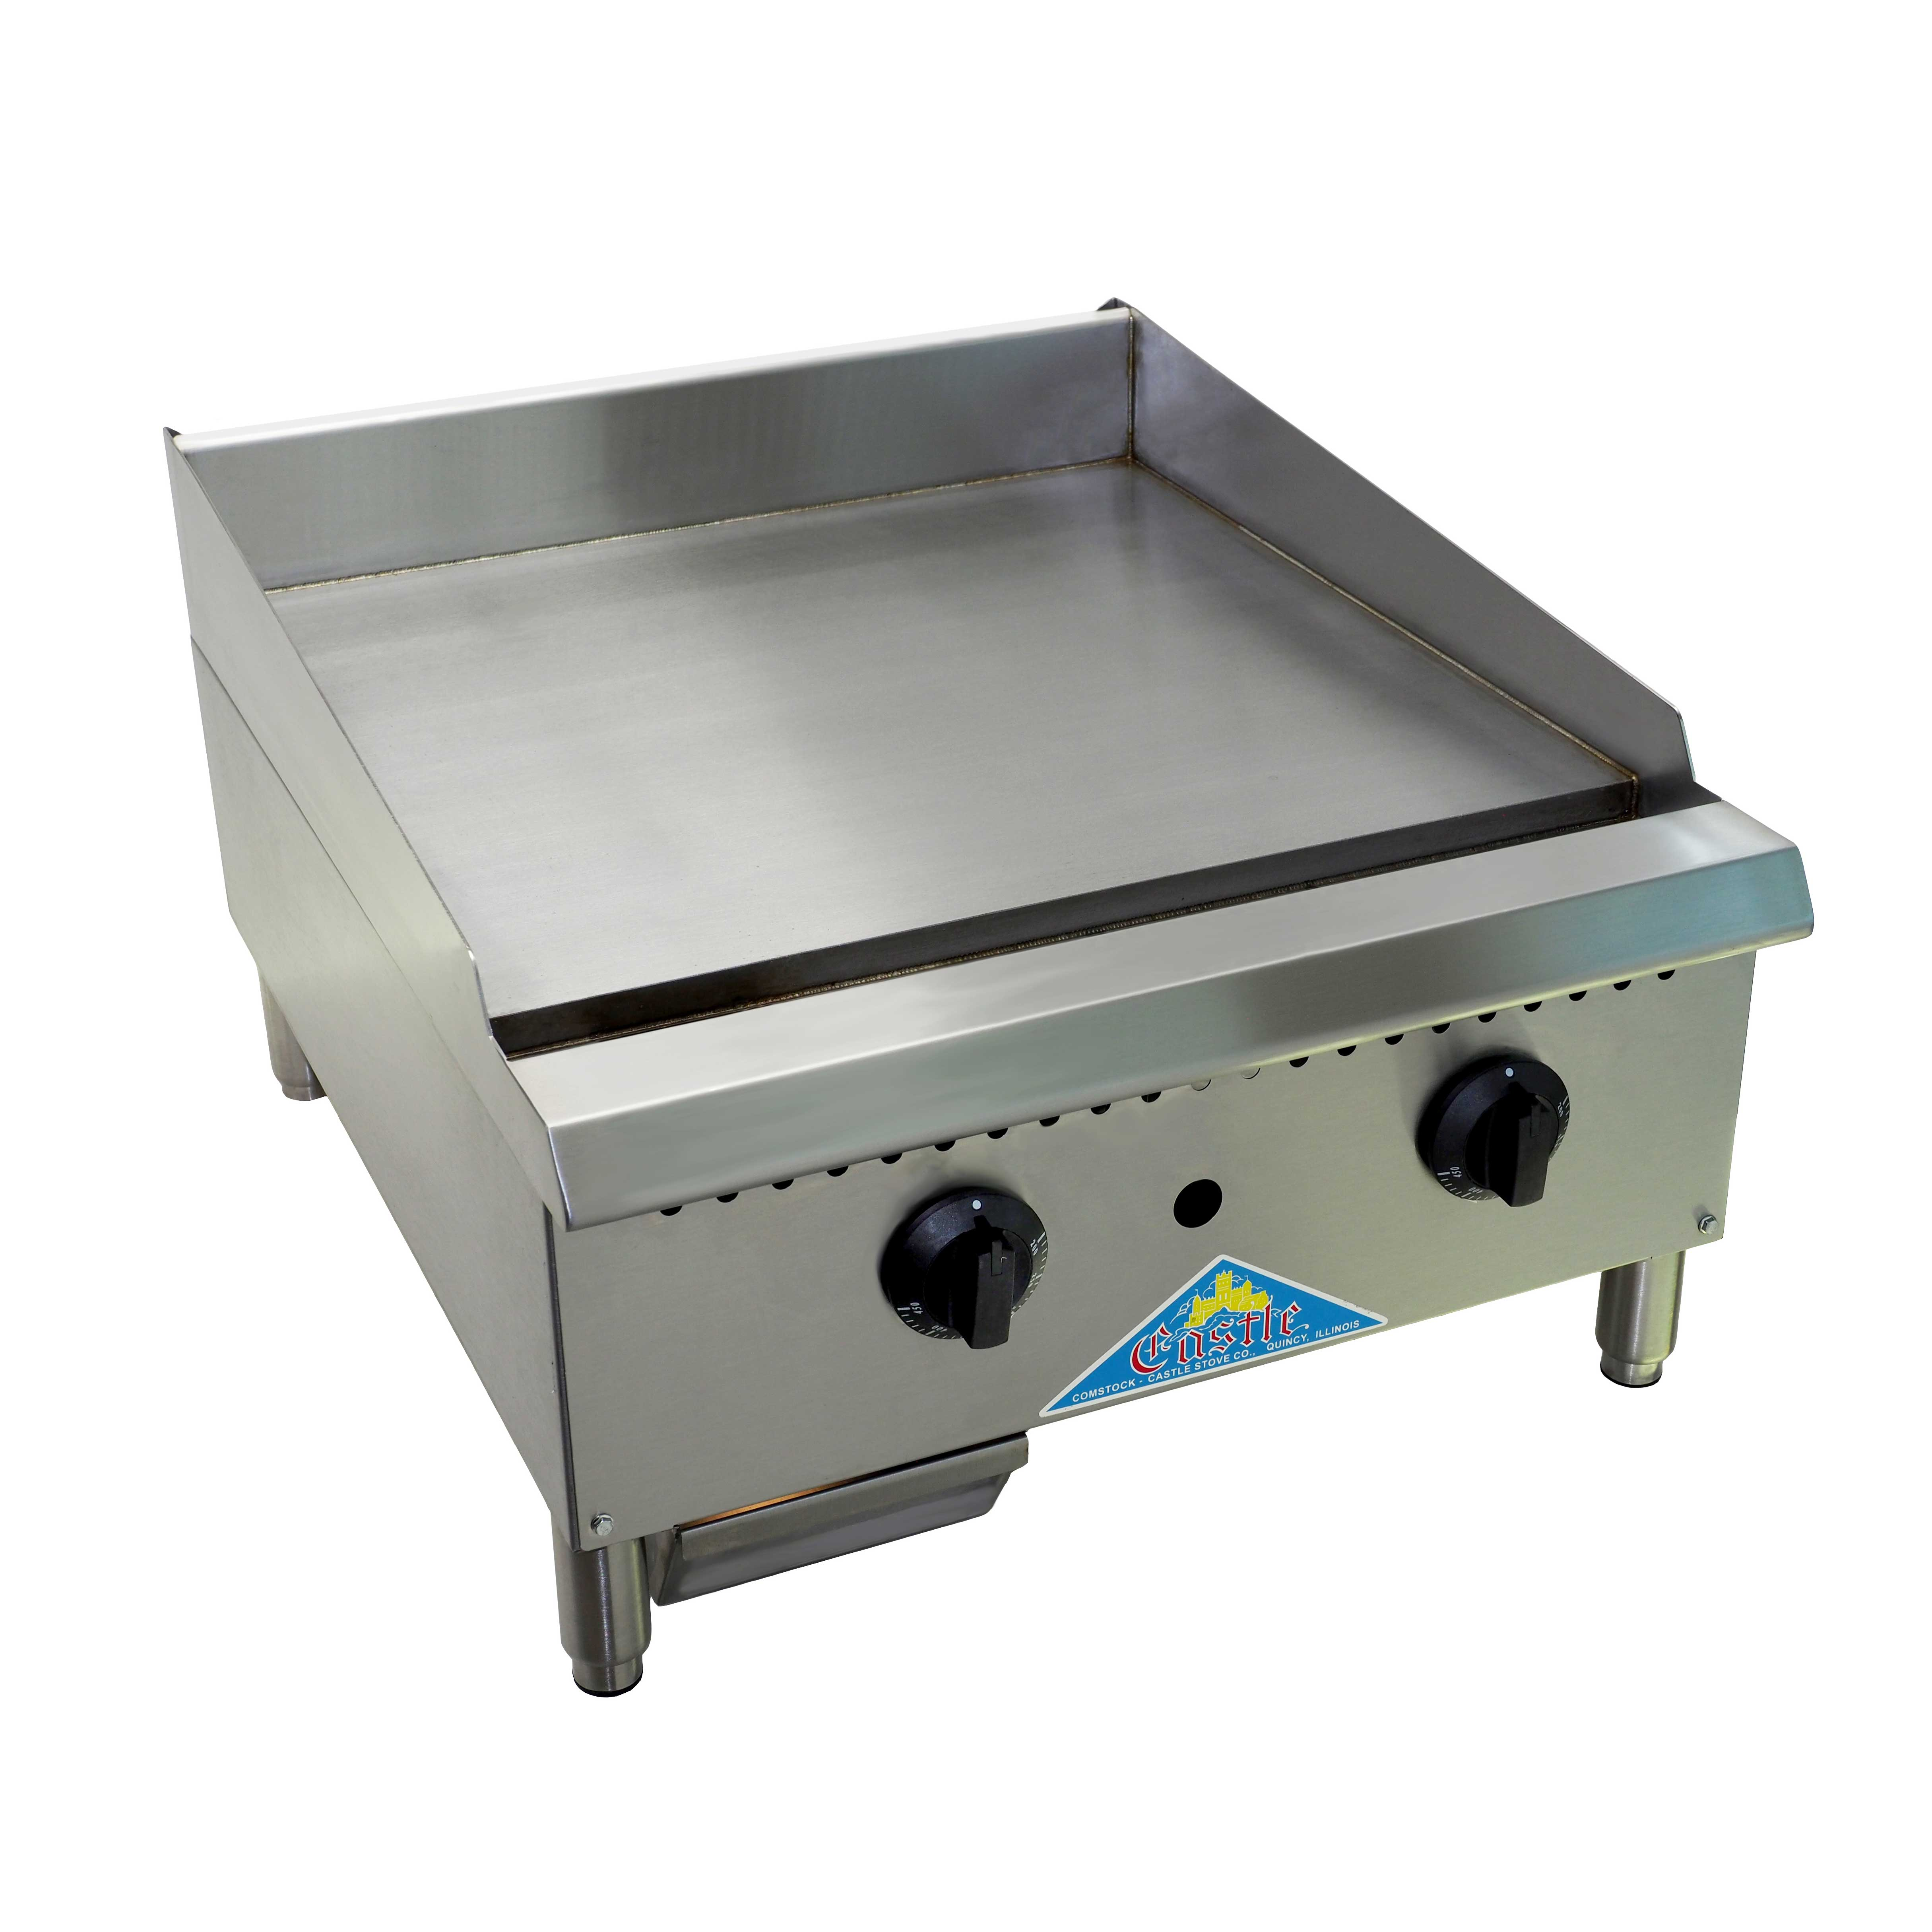 Comstock-Castle CCHG-24-1 griddle, gas, countertop